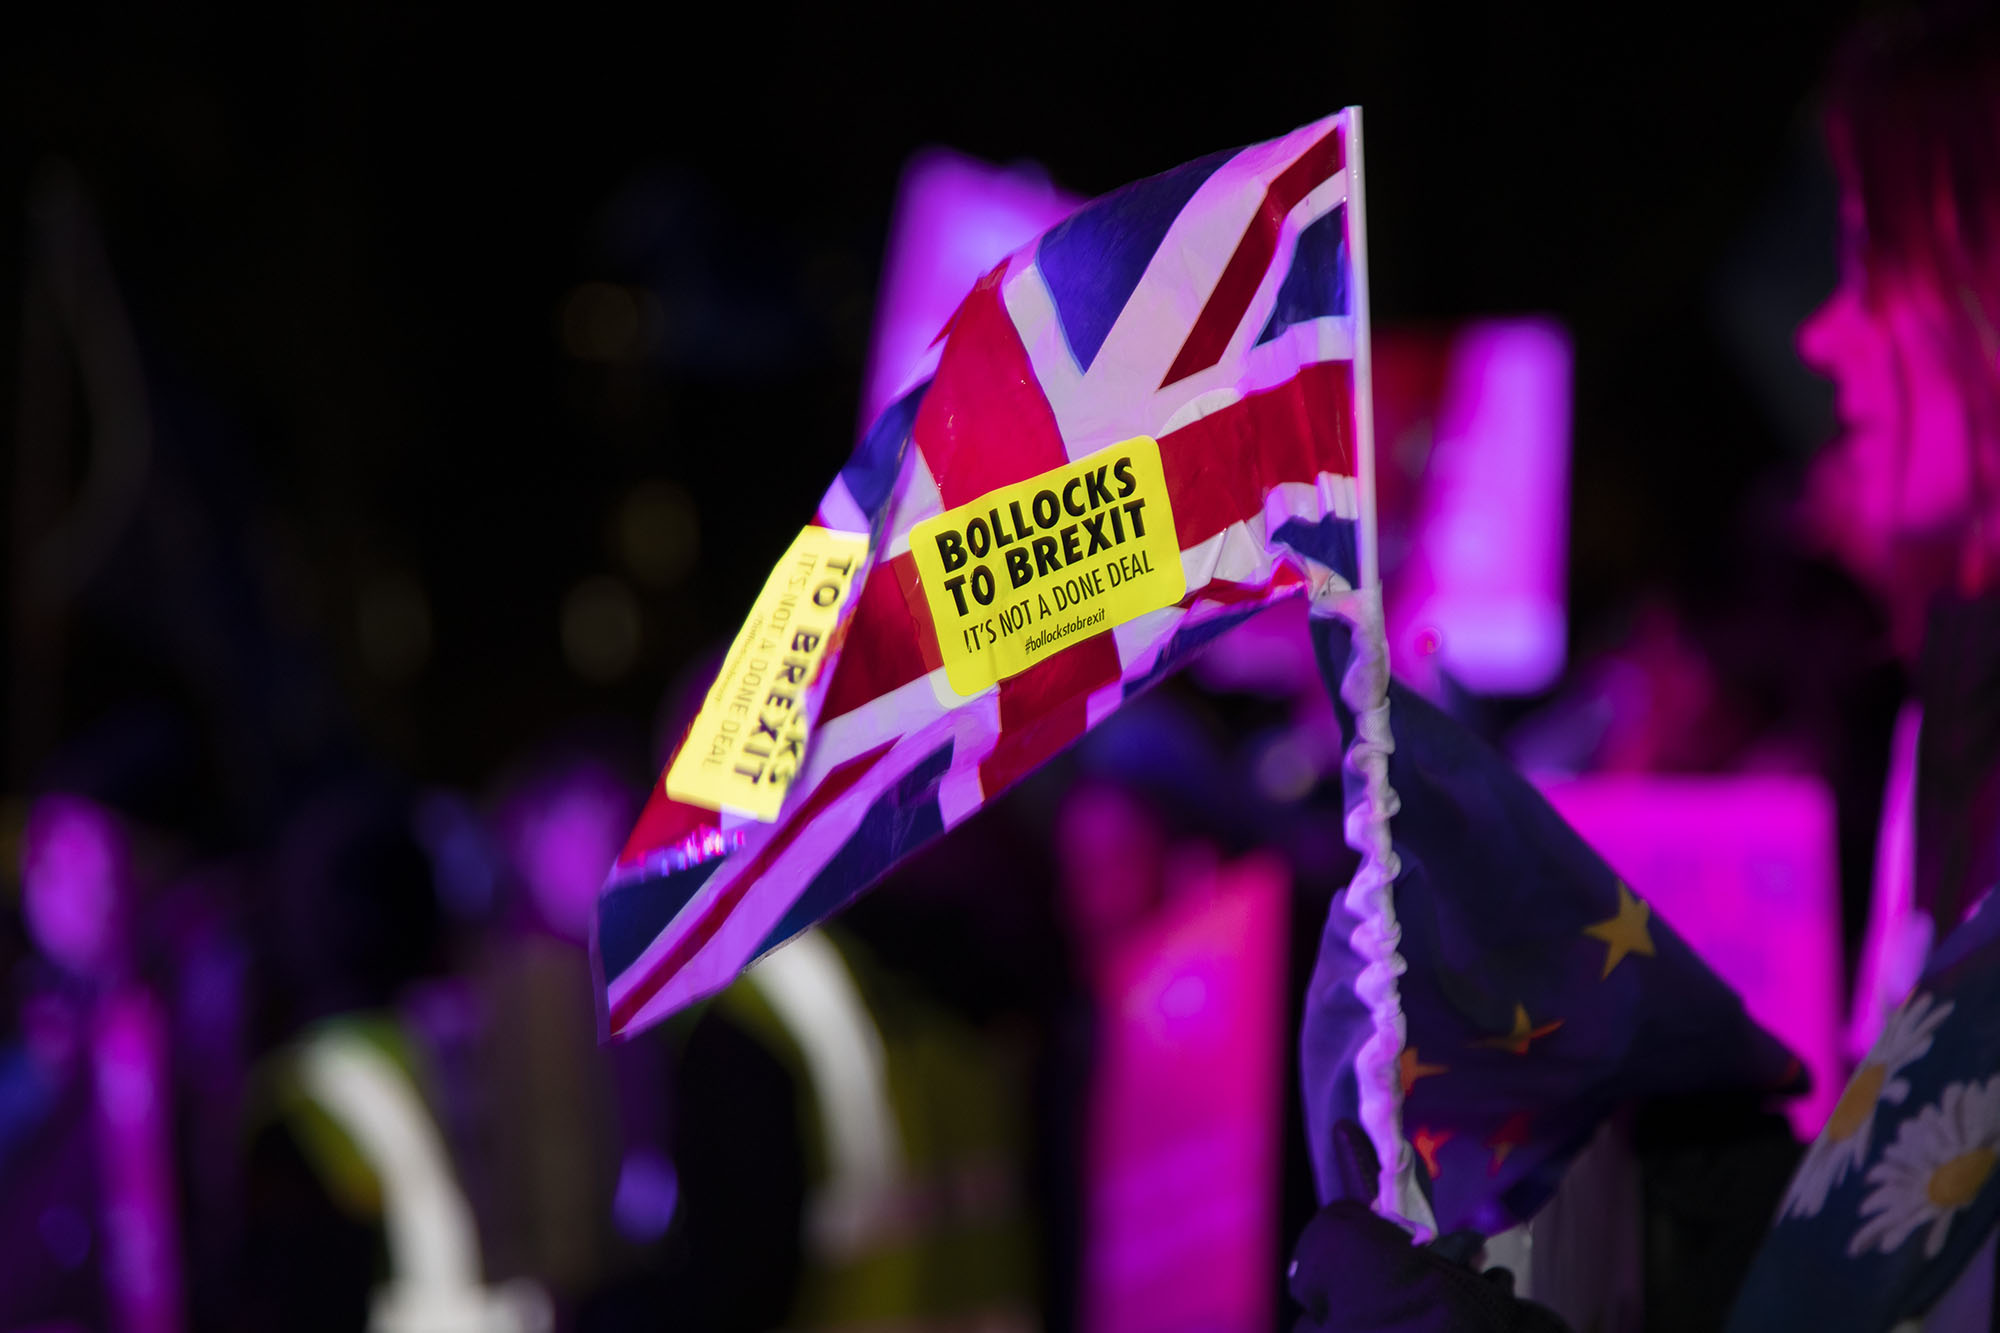 Bollocks to Brexit sticker as the results are awaited on the day of the first 'meaningful vote' when MPs will back or reject the Prime Minister's Brexit Withdrawal Agreement on 15th January 2019.